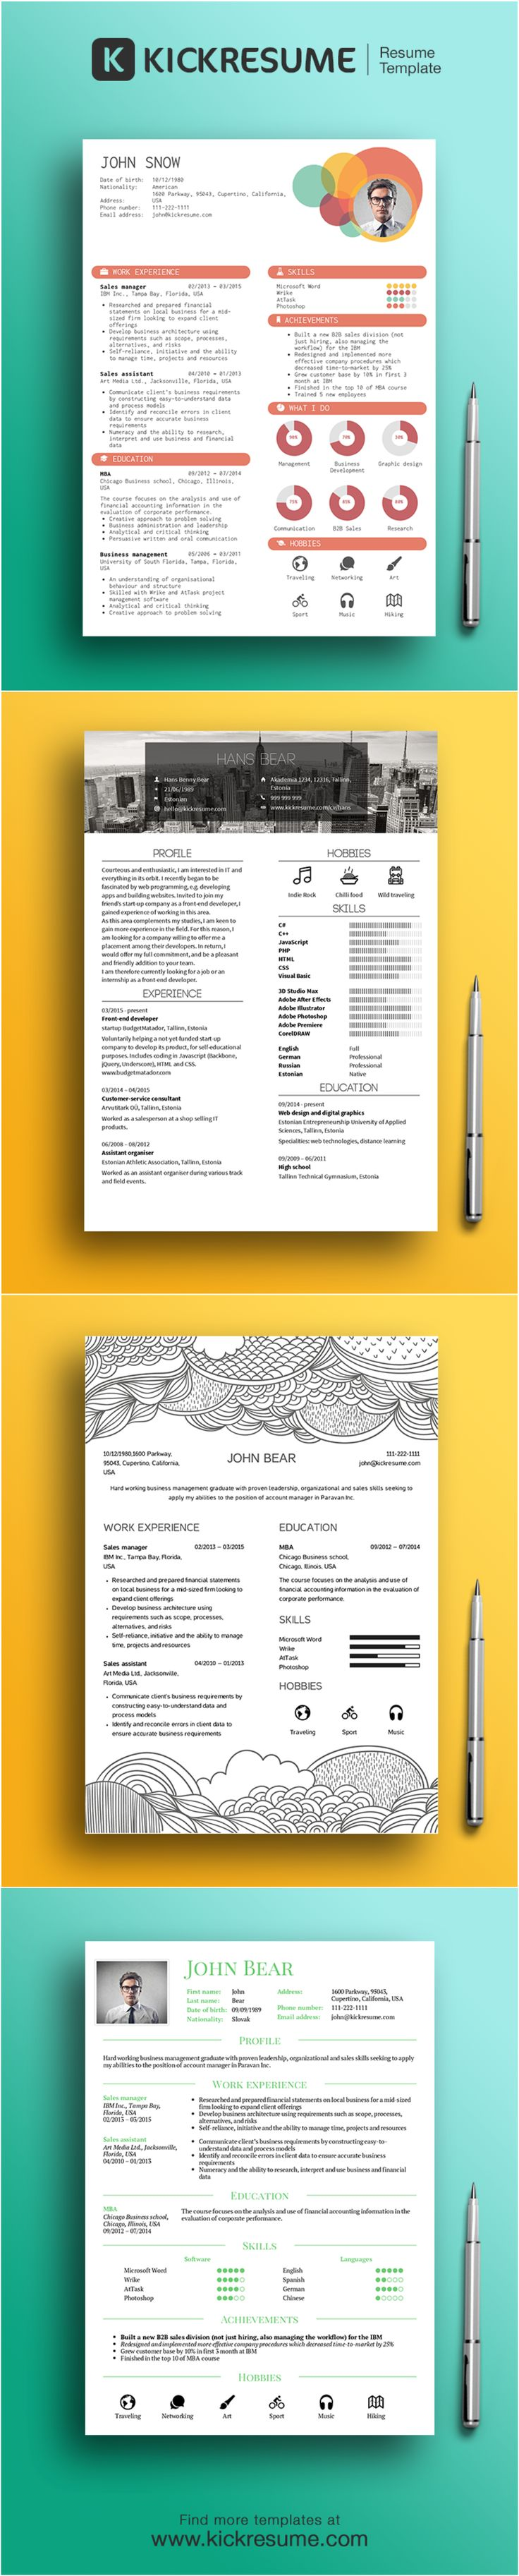 Beautiful infographic resume templates by www.kickresume.com                                                                                                                                                                                 More